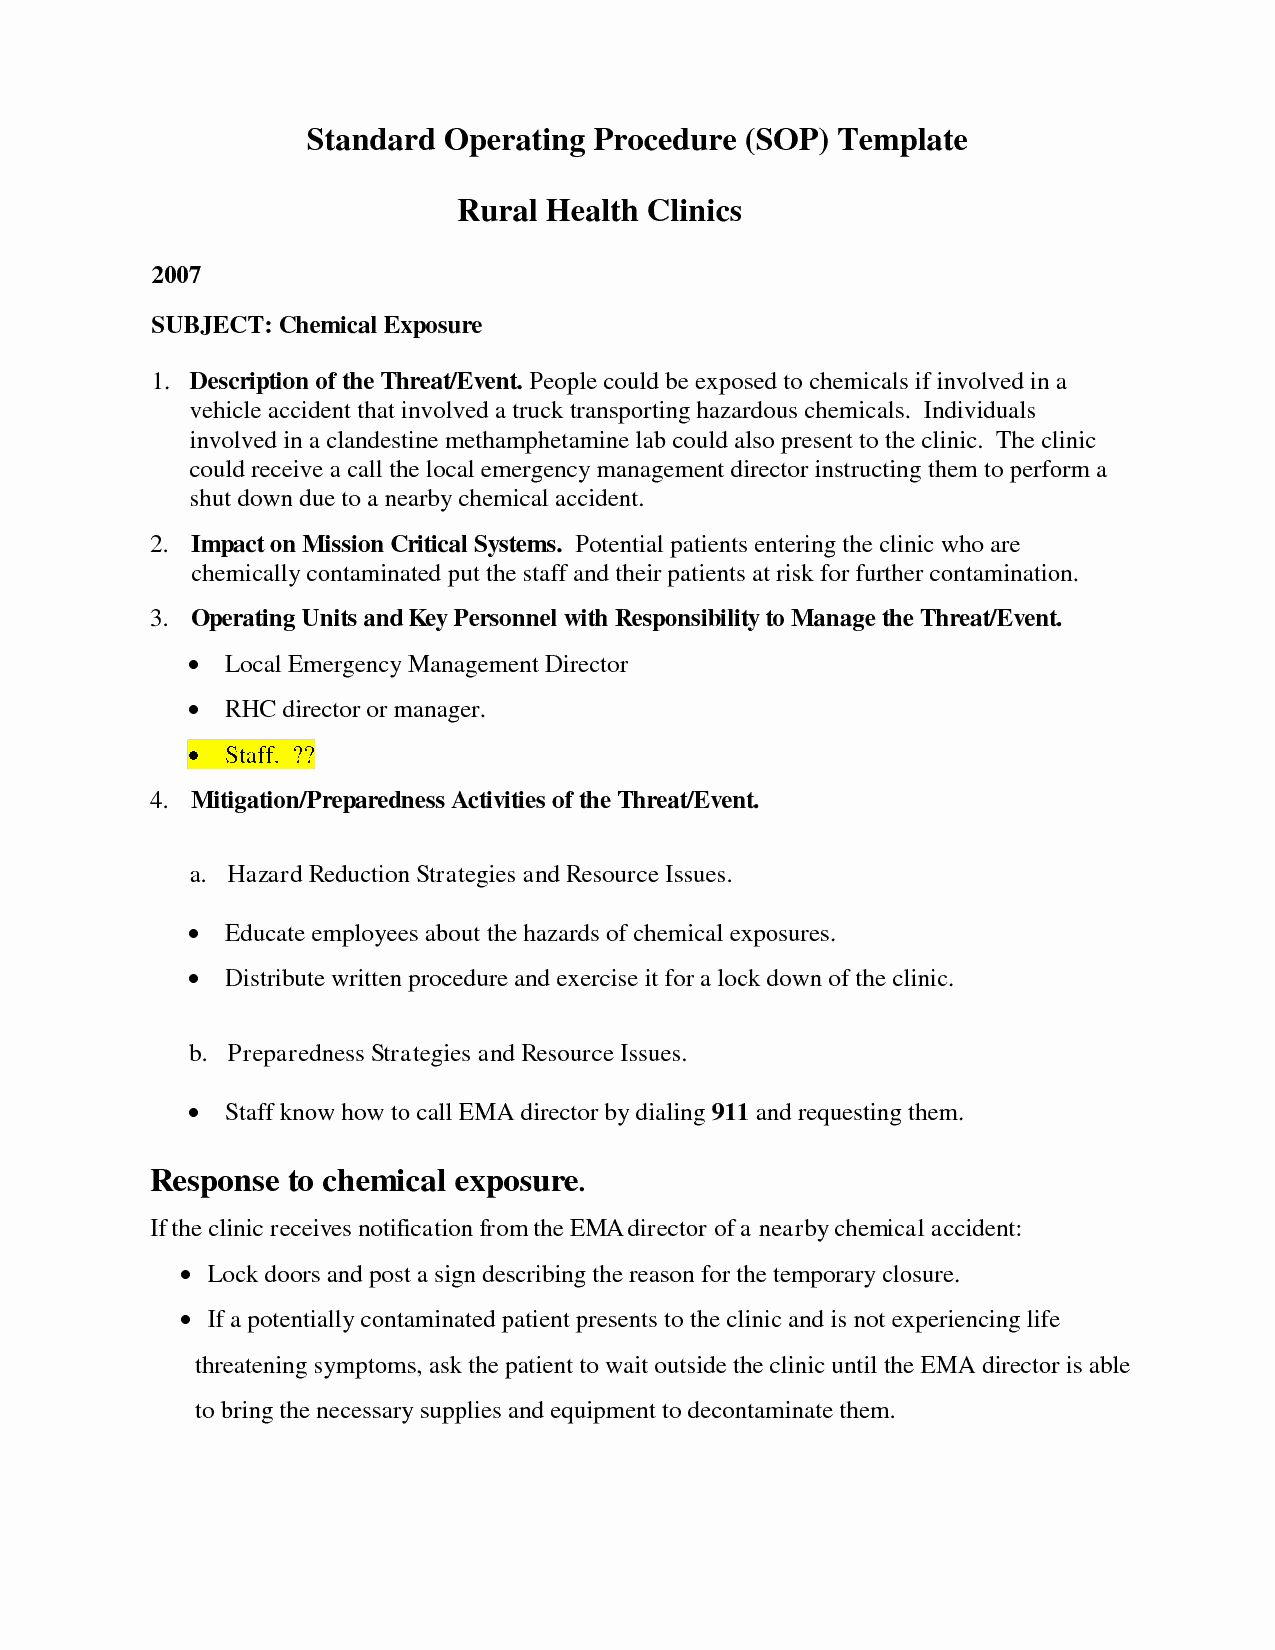 Standard Operation Procedure Format Lovely 9 Standard Standard Operating Procedure Standard Operating Procedure Template Standard Operating Procedure Examples